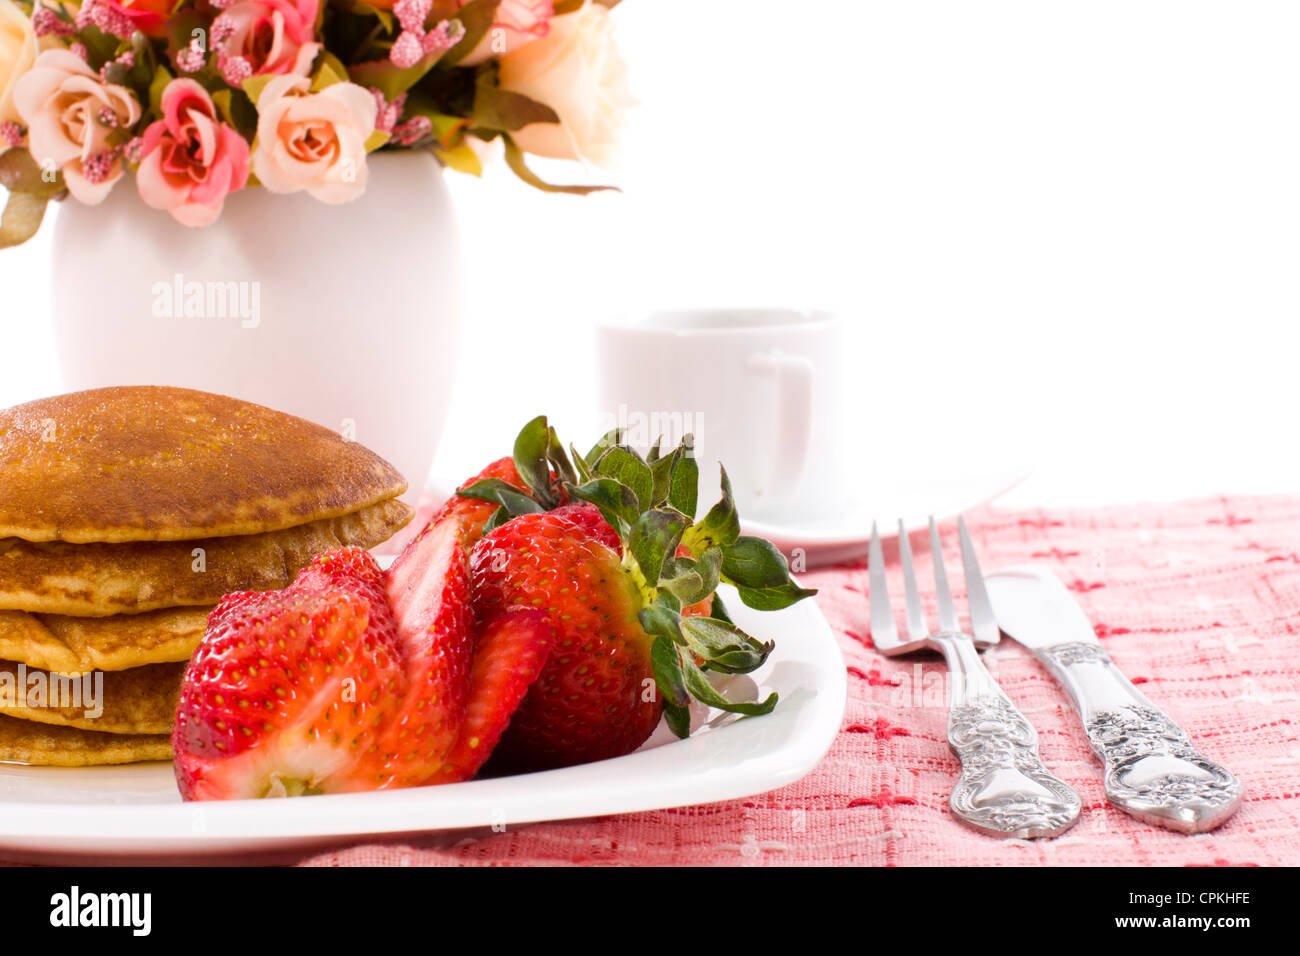 Pancake and strawberry have maple syrup on top with coffee - Stock Image